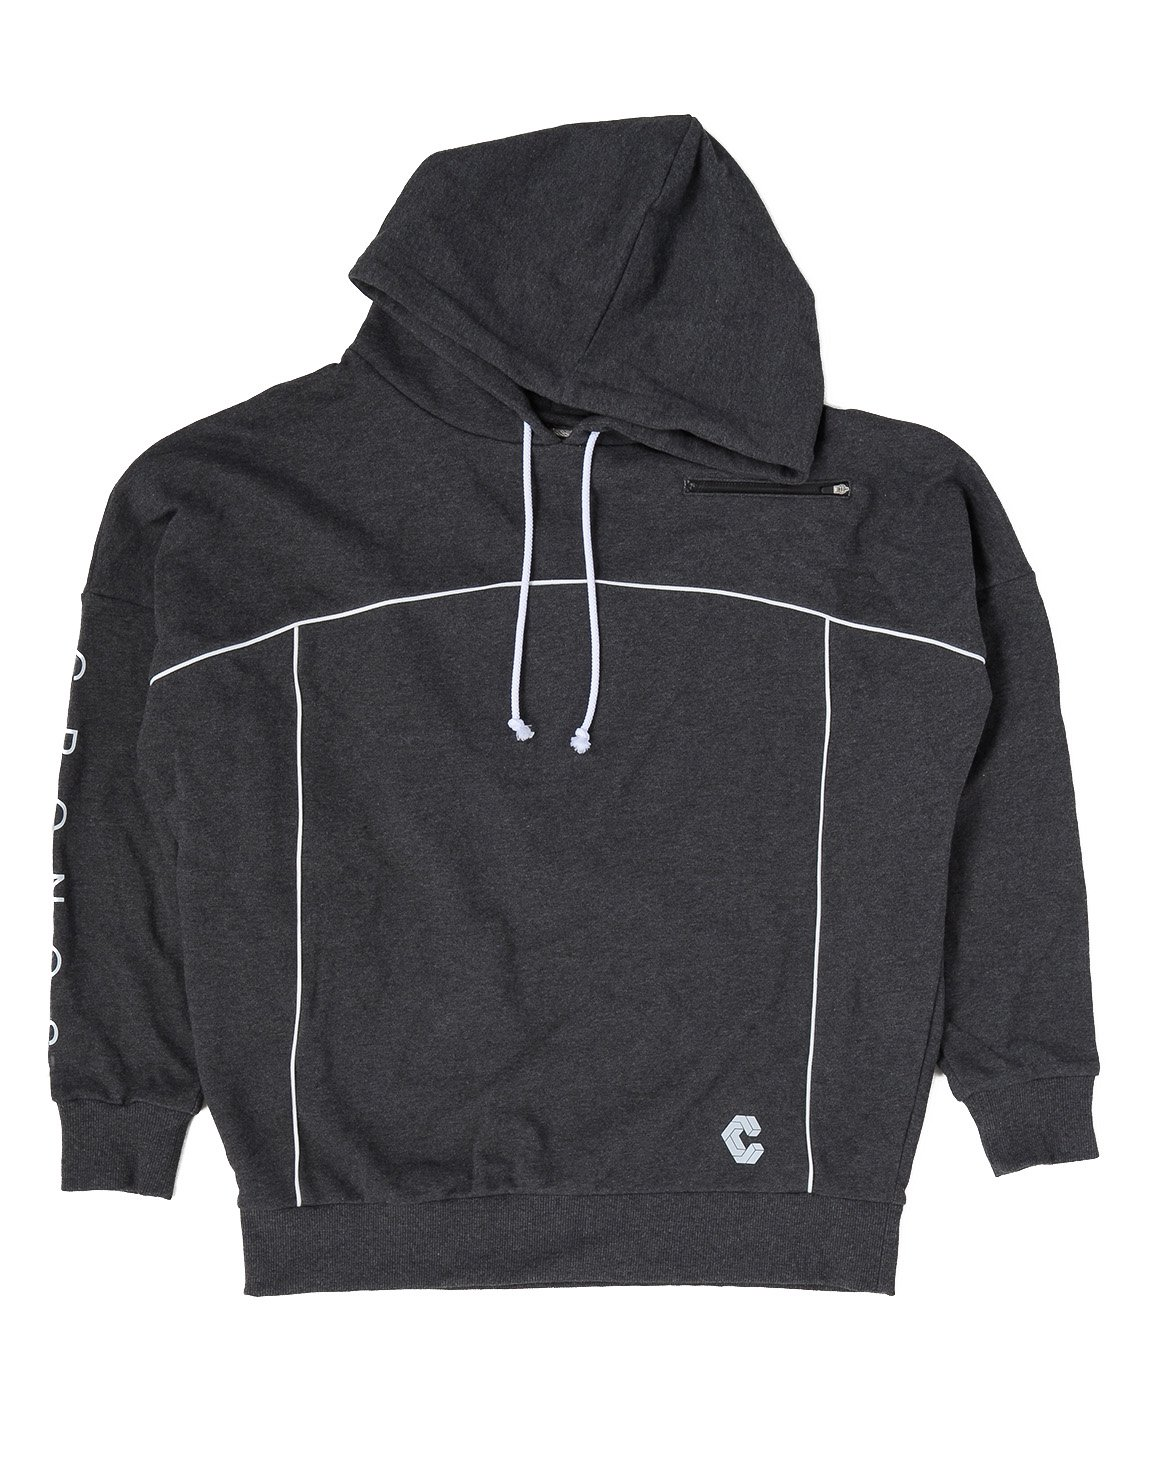 CRONOS ARM LOGO LINE ACCENT BIG SIZE HOODY【GRAY】